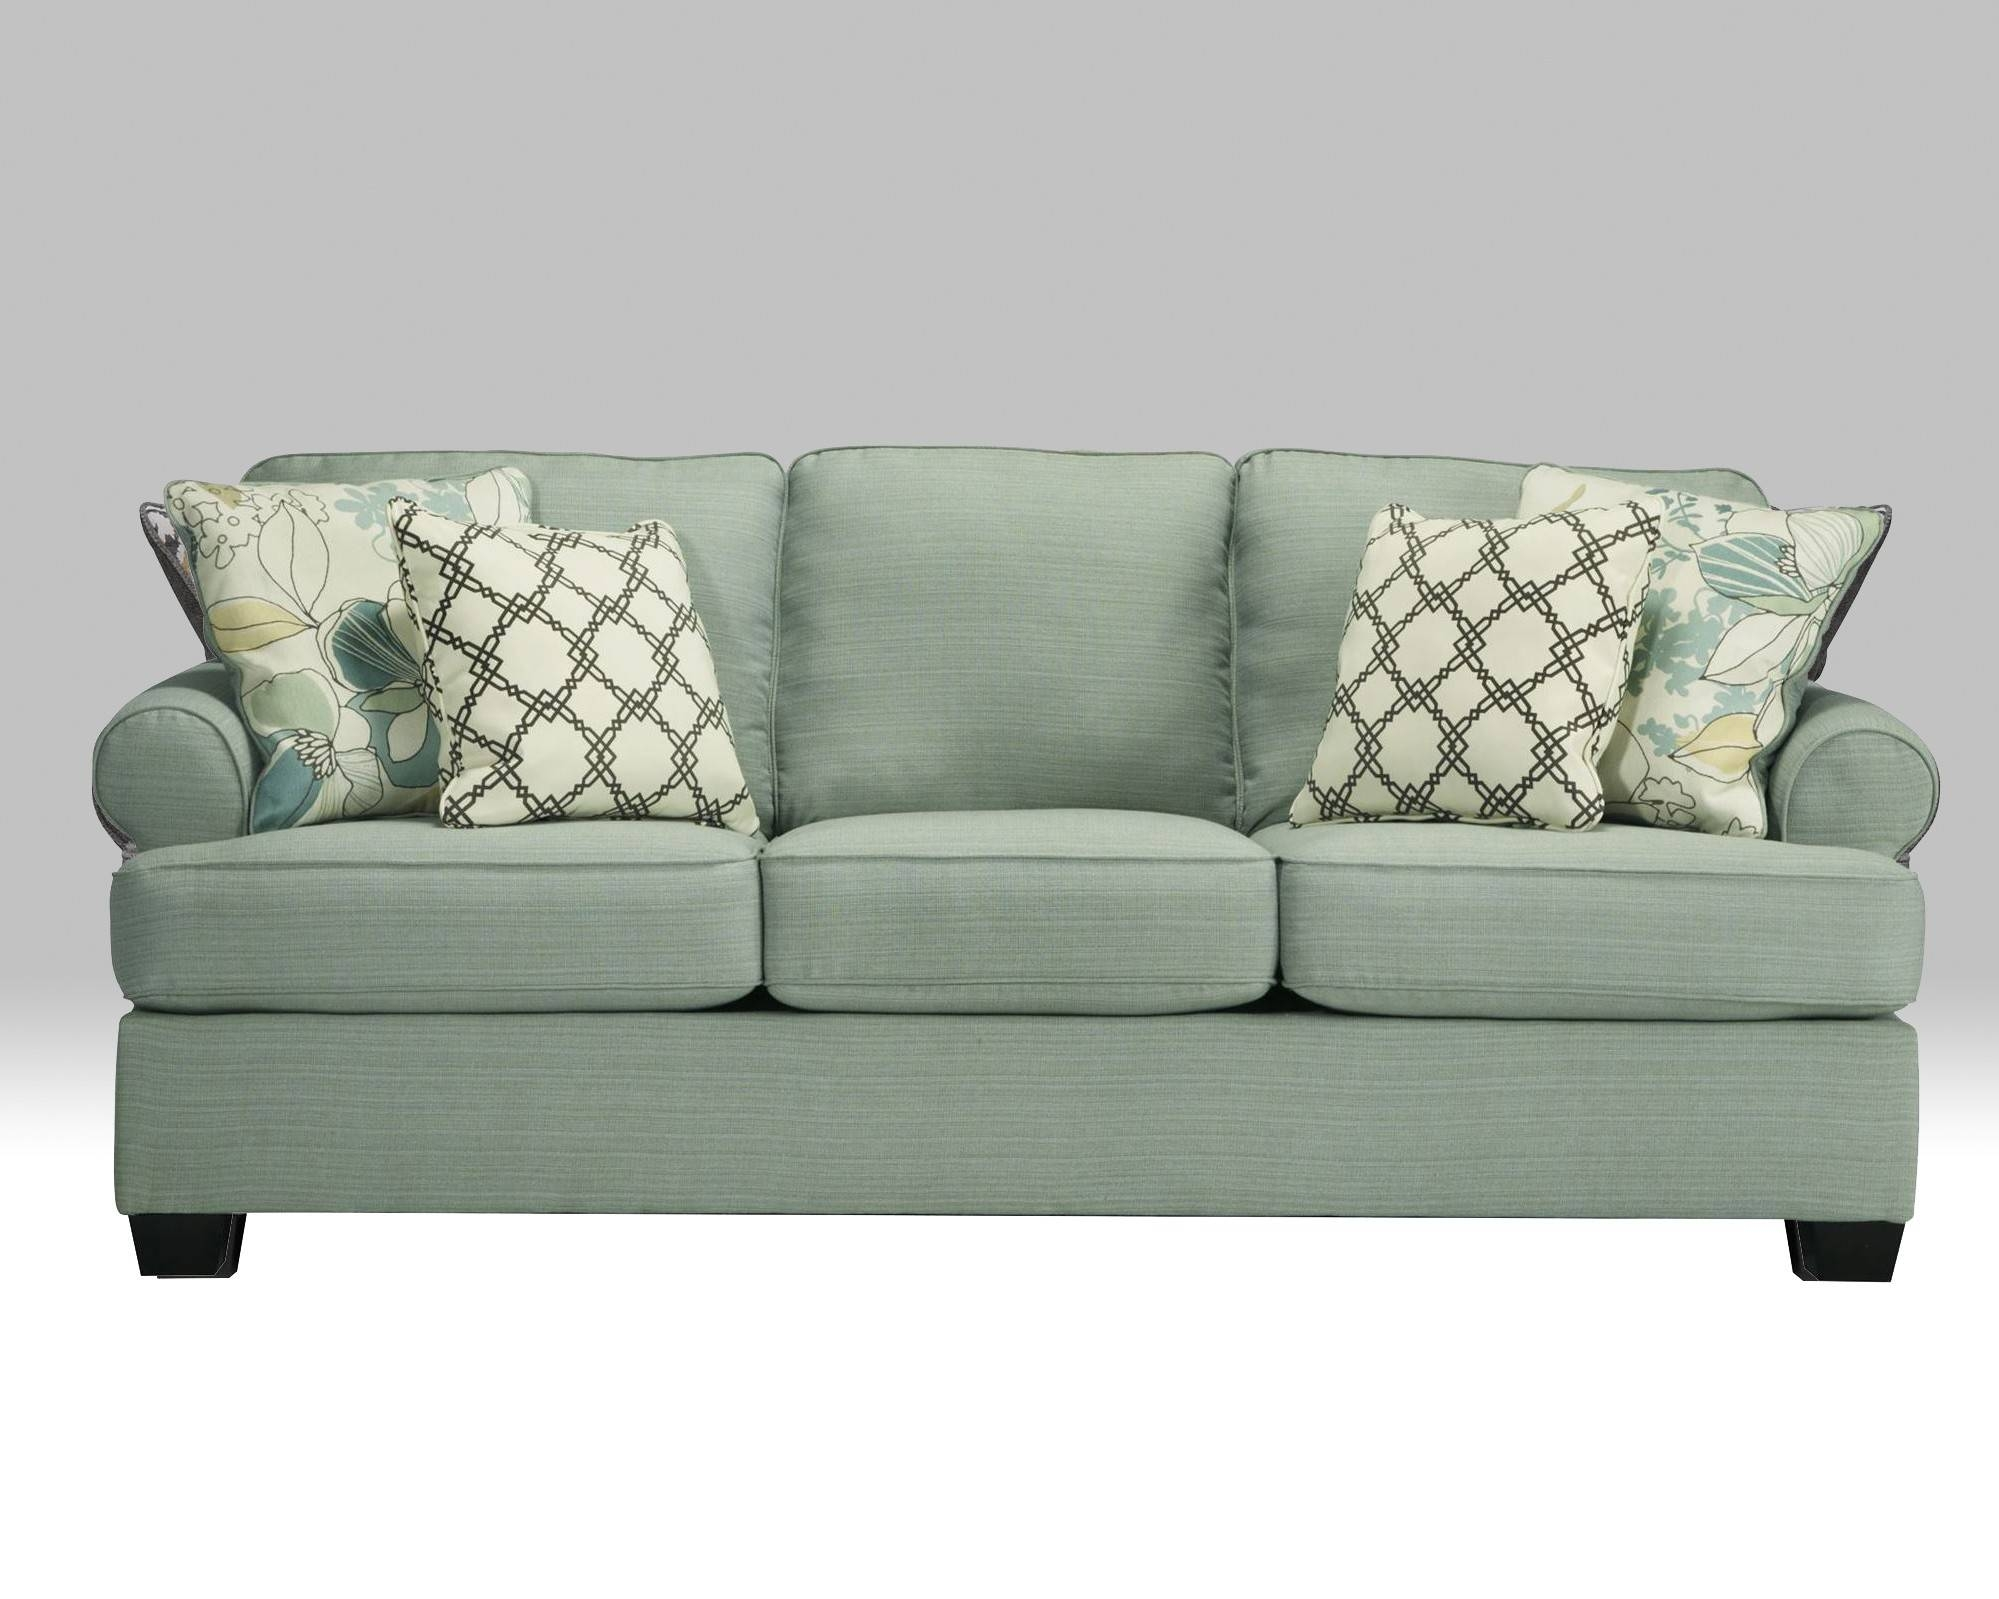 Daystar Seafoam Sofa For $390.00 - Furnitureusa with regard to Seafoam Green Couches (Image 7 of 15)